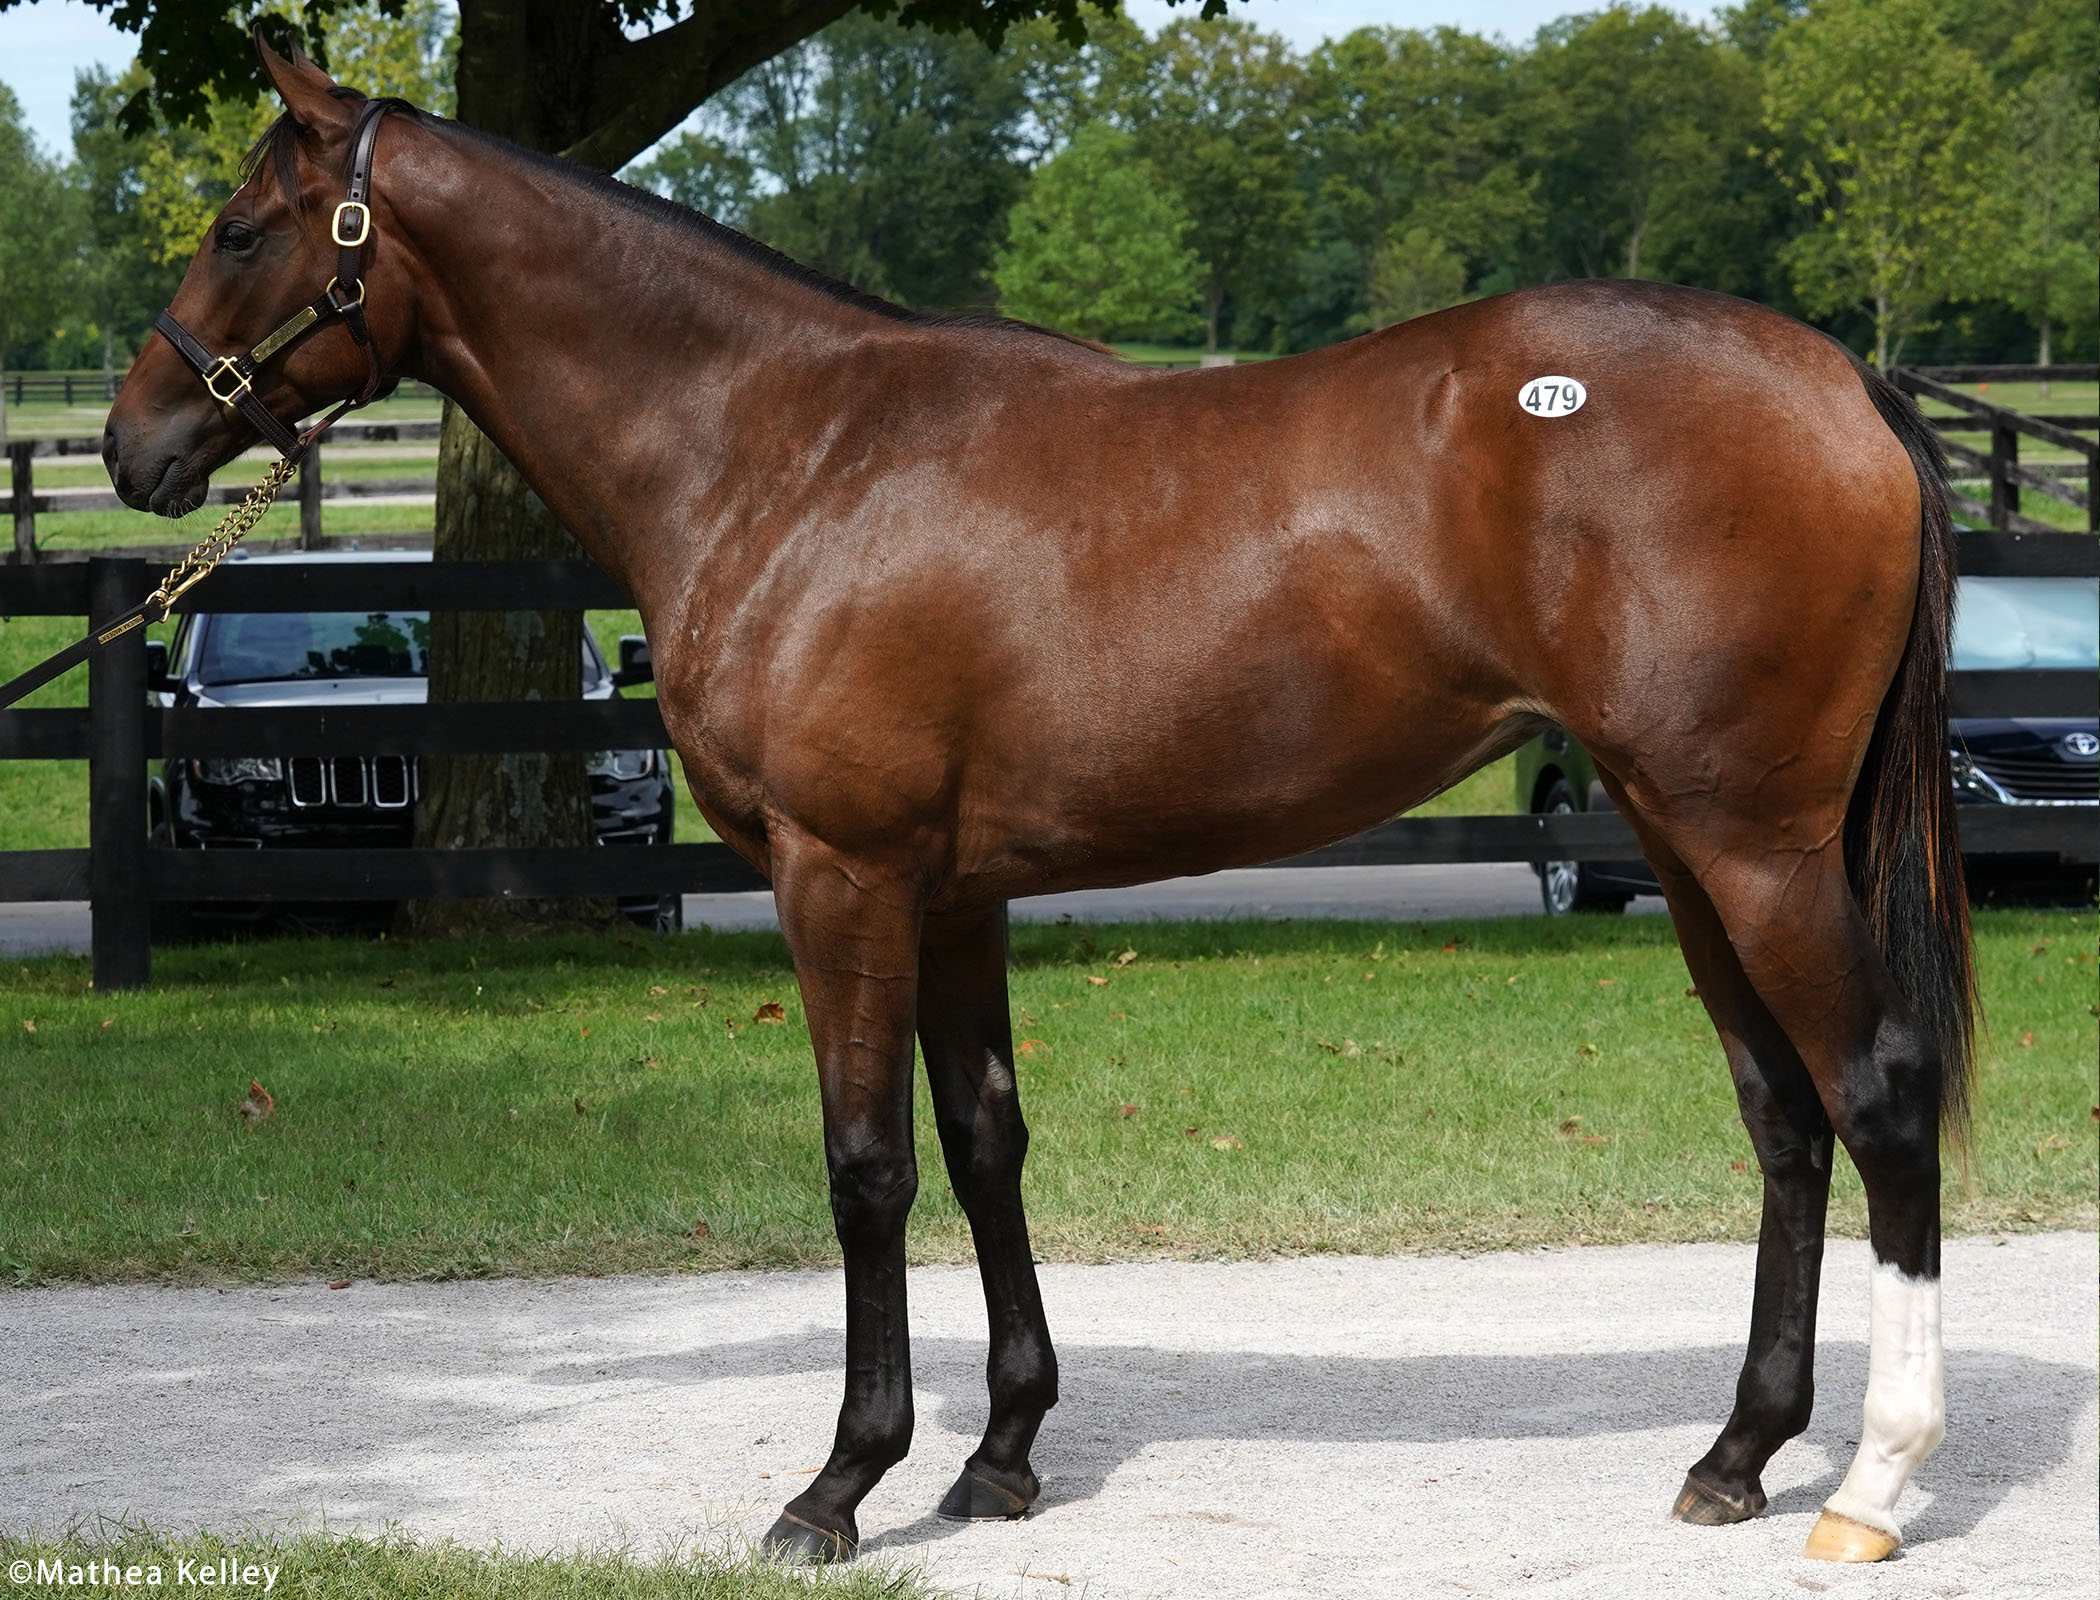 Unified filly out of the Haynesfield mare Another Ghazo, purchased at Fasig-Tipton's Selected Yearling Showcase and available for a thoroughbred racing partnership.